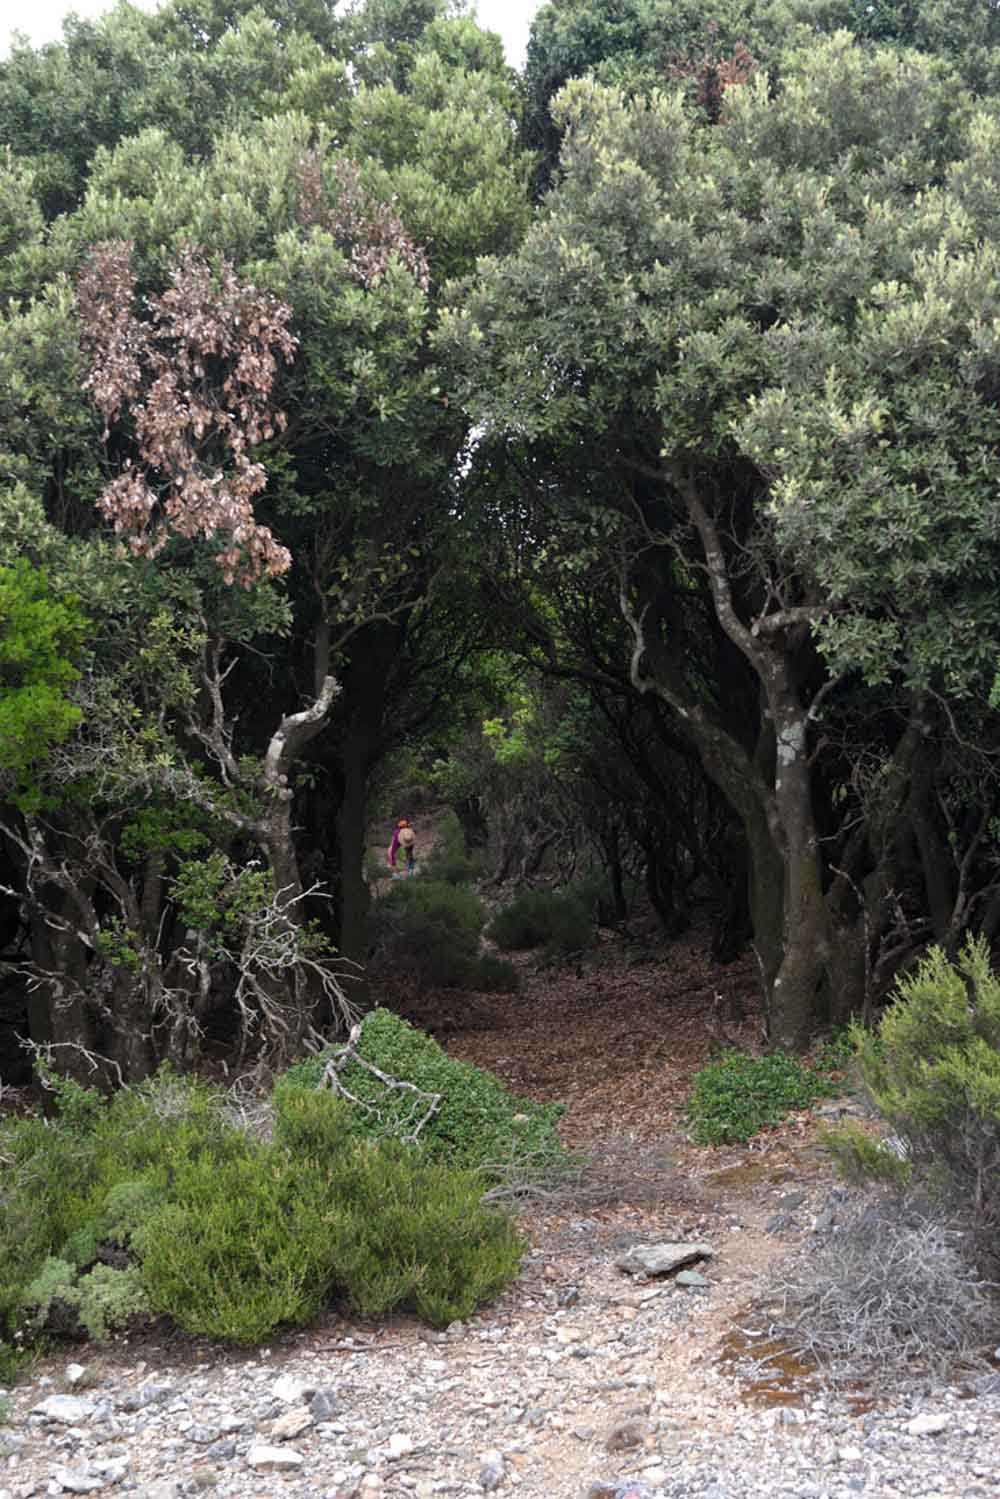 Ikaria's Protected Forest